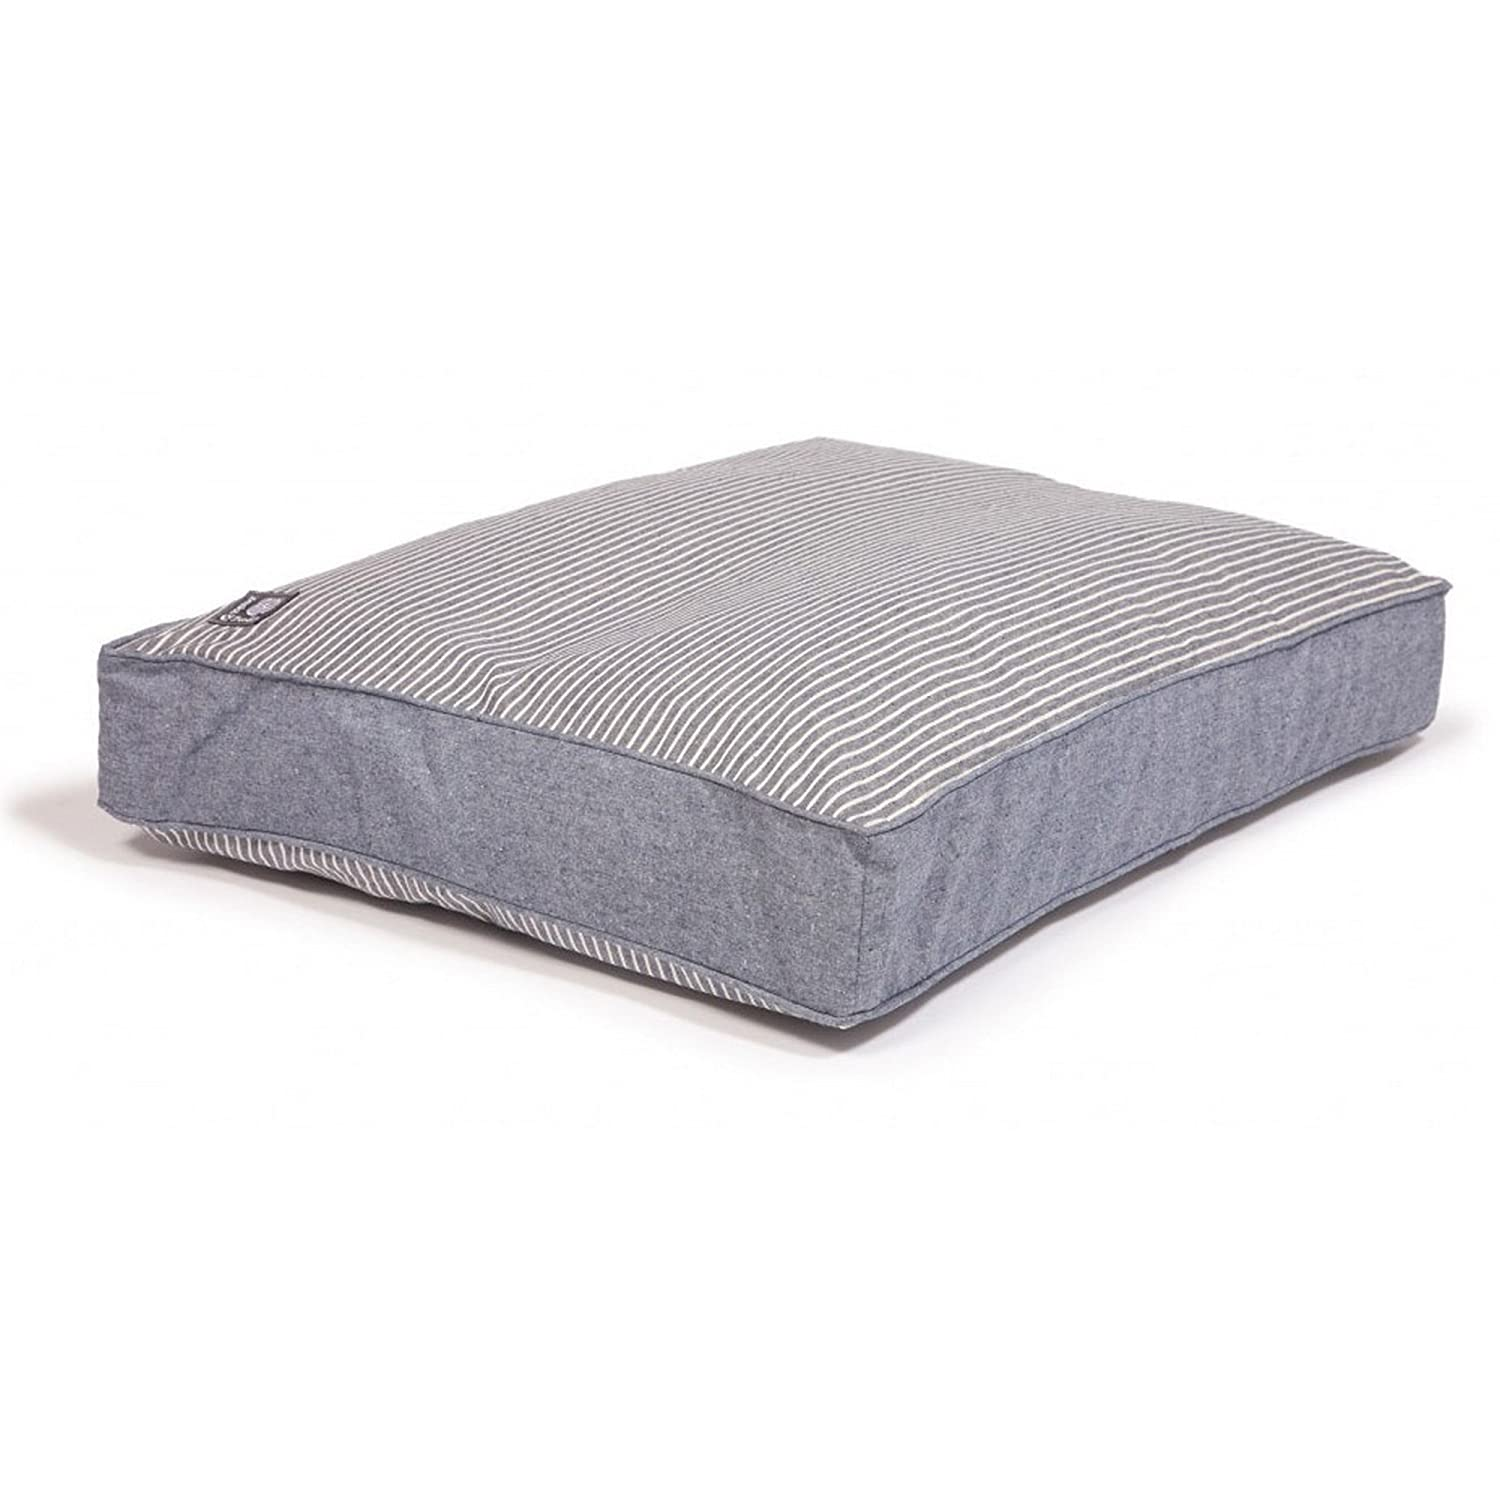 bluee Cream Medium bluee Cream Medium Danish Design Pet Products Maritime Nautical Design Box Duvet (Medium) (bluee Cream)